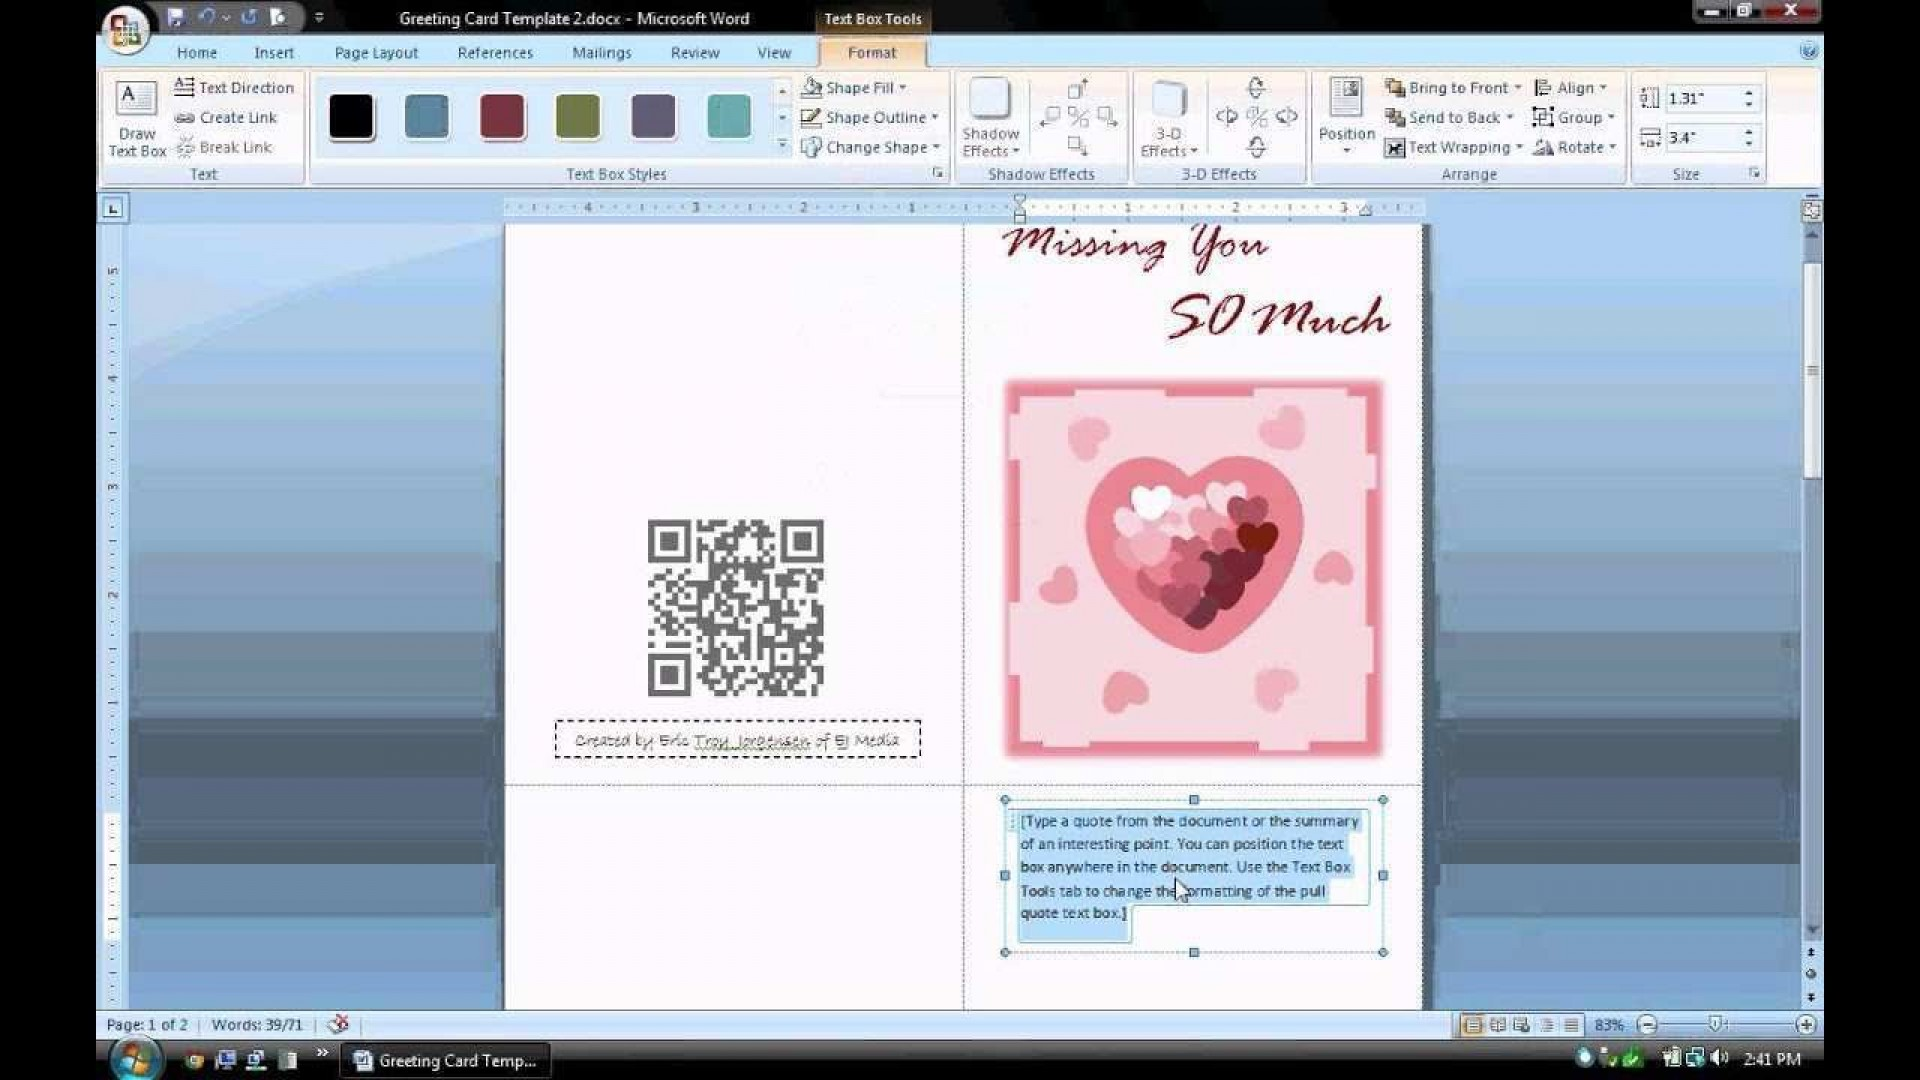 003 Unbelievable Microsoft Word Card Template Highest Clarity  Birthday Download Busines Free1920